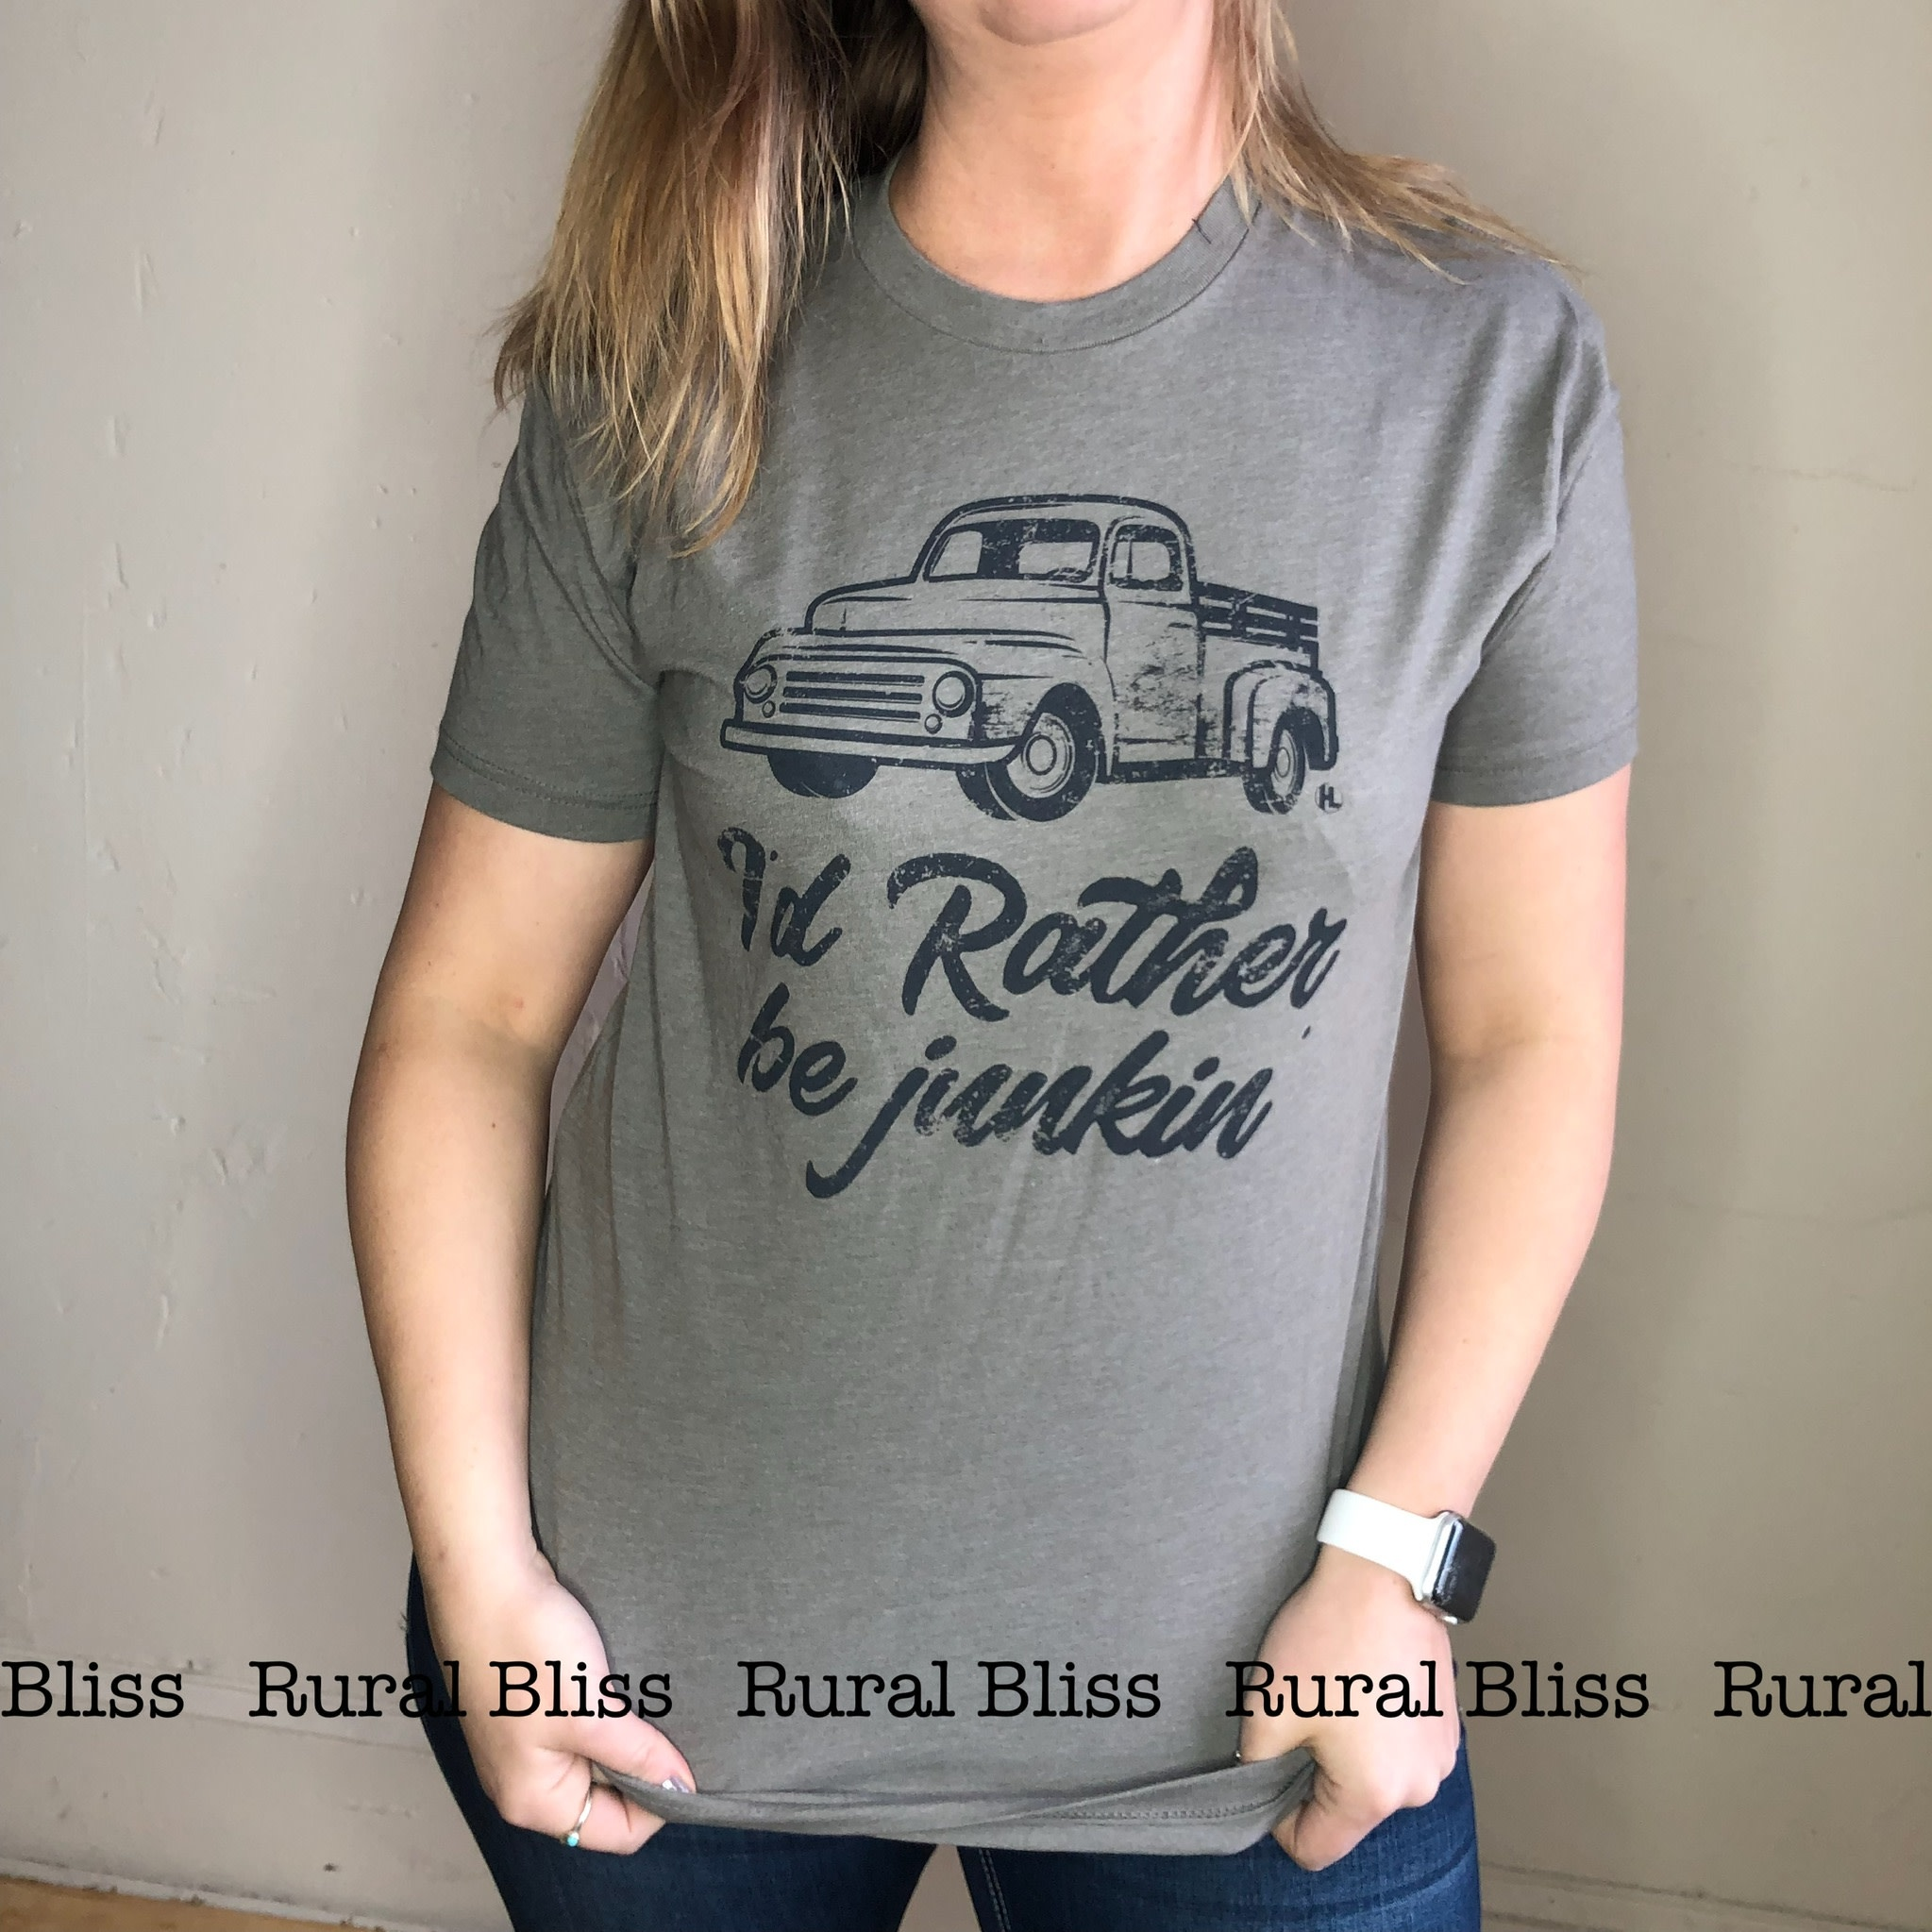 Rather be Junkin' Graphic Tee